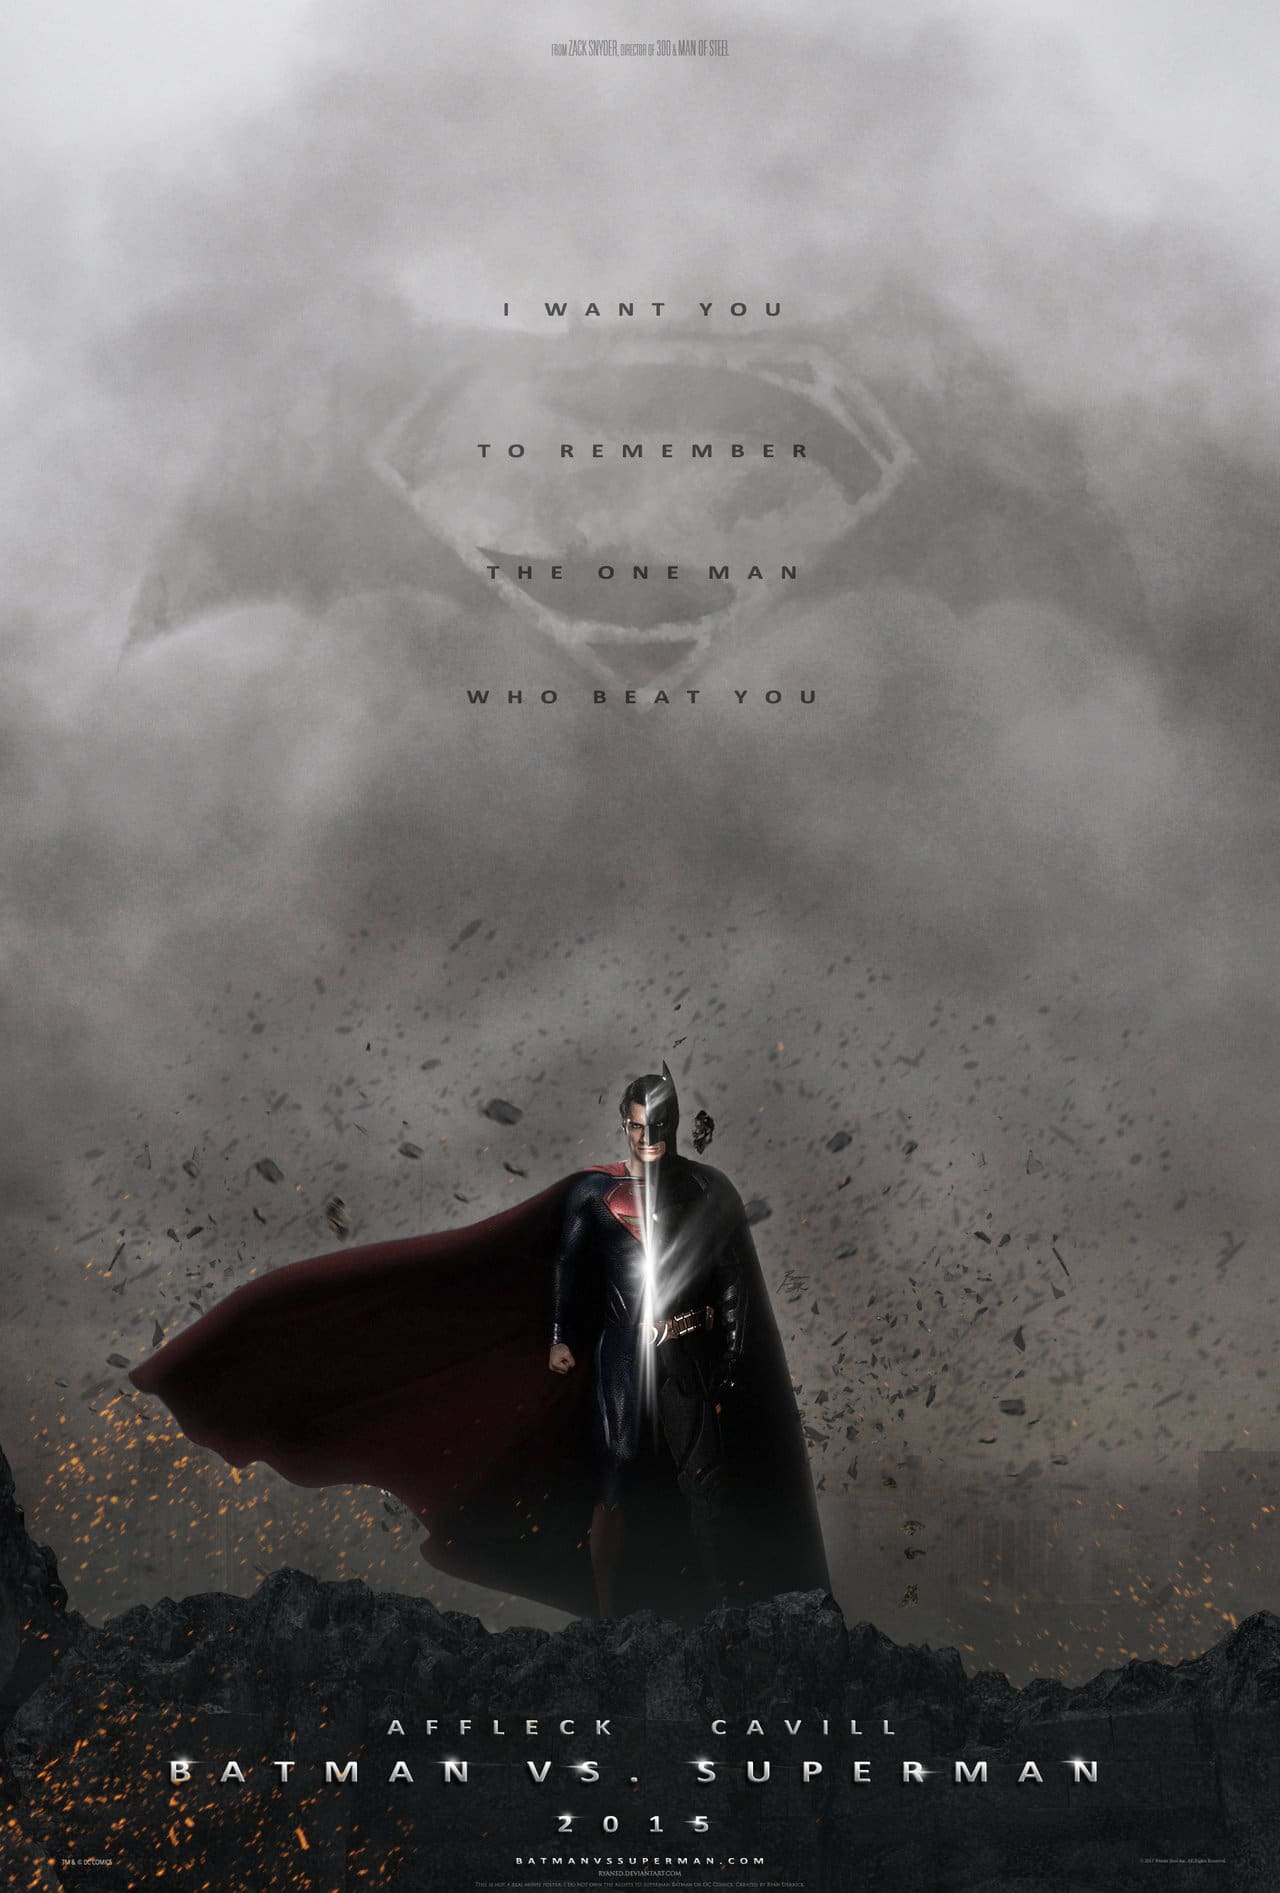 Batman-Vs-Superman-Posters-wallpaper-hd-printable-superman-and-batman-walking-together-one-body